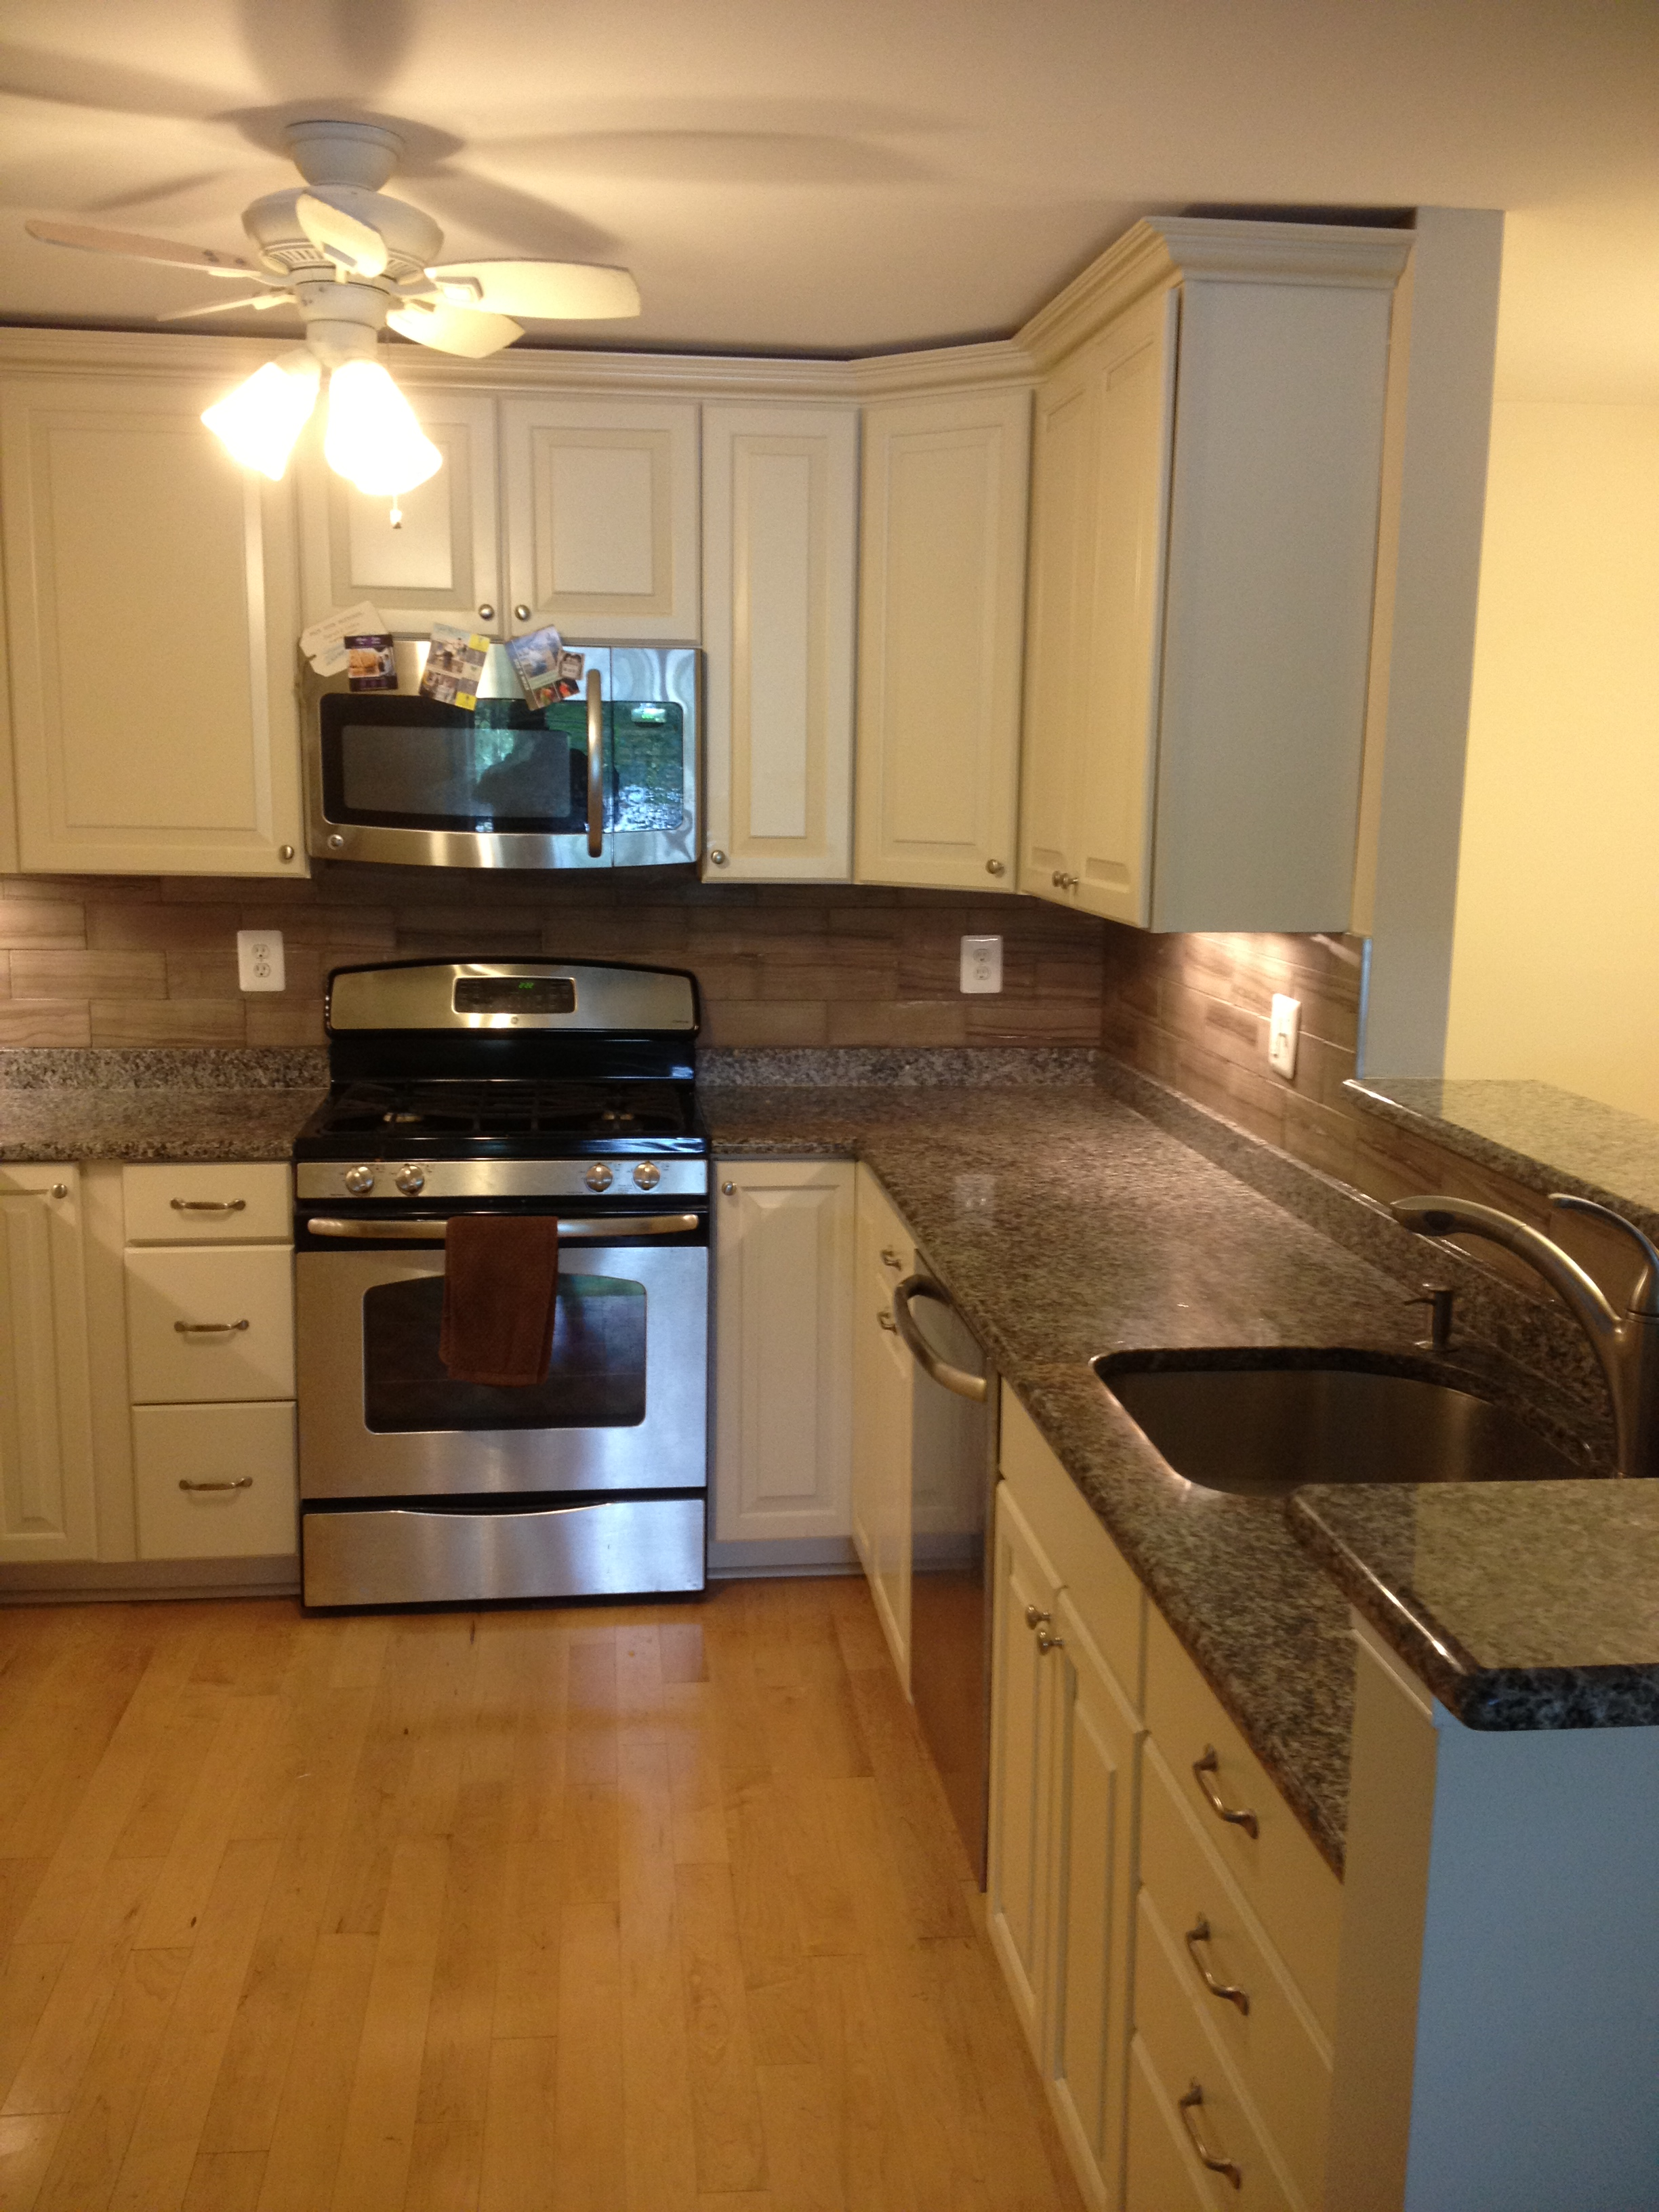 Clean, natural Kitchen remodel in Bowie MD